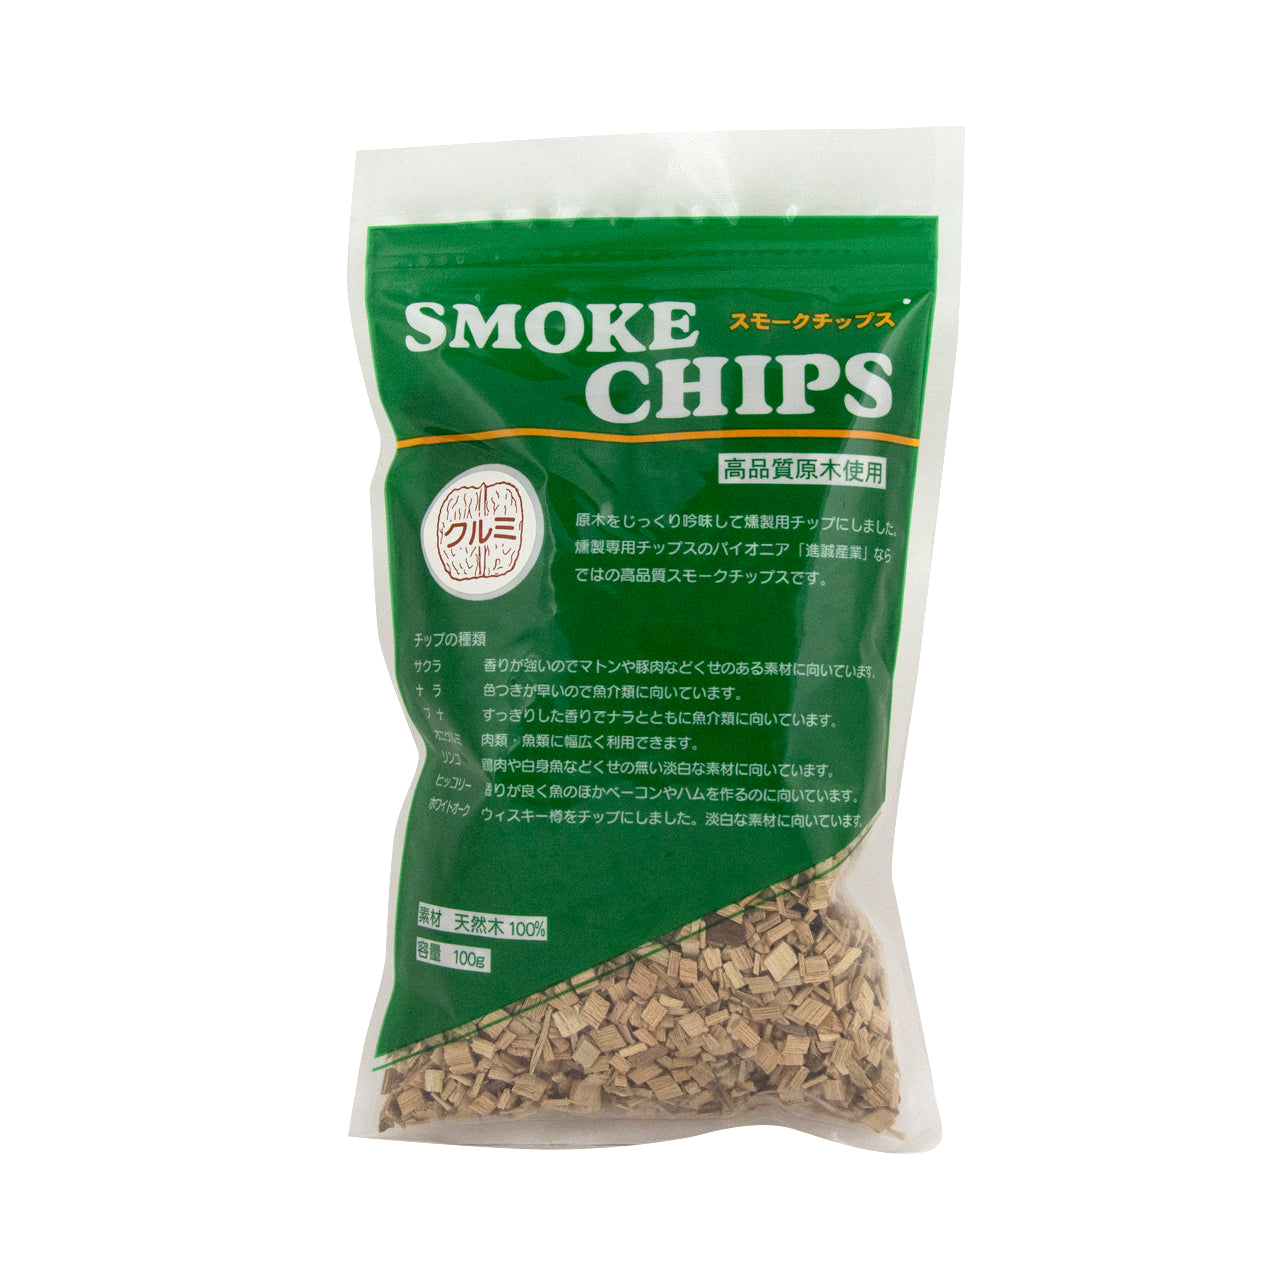 Wood Chips for Smoking - Sakura (SKU:95921)